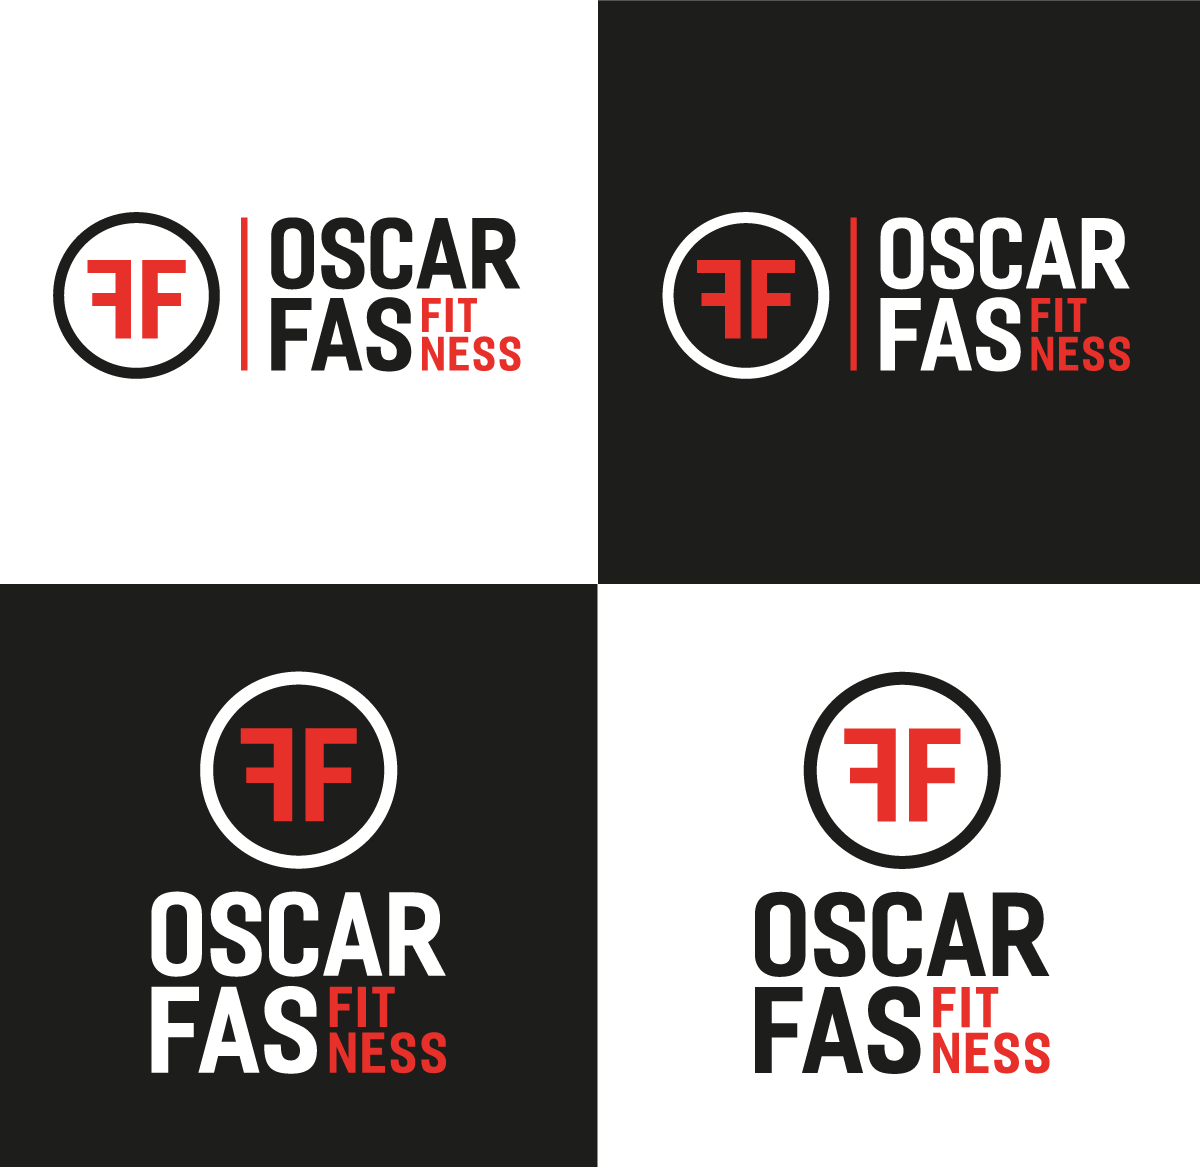 OSCAR FAS FITNESS PERSONAL TRAINER LOGO CONFIGURATIONS